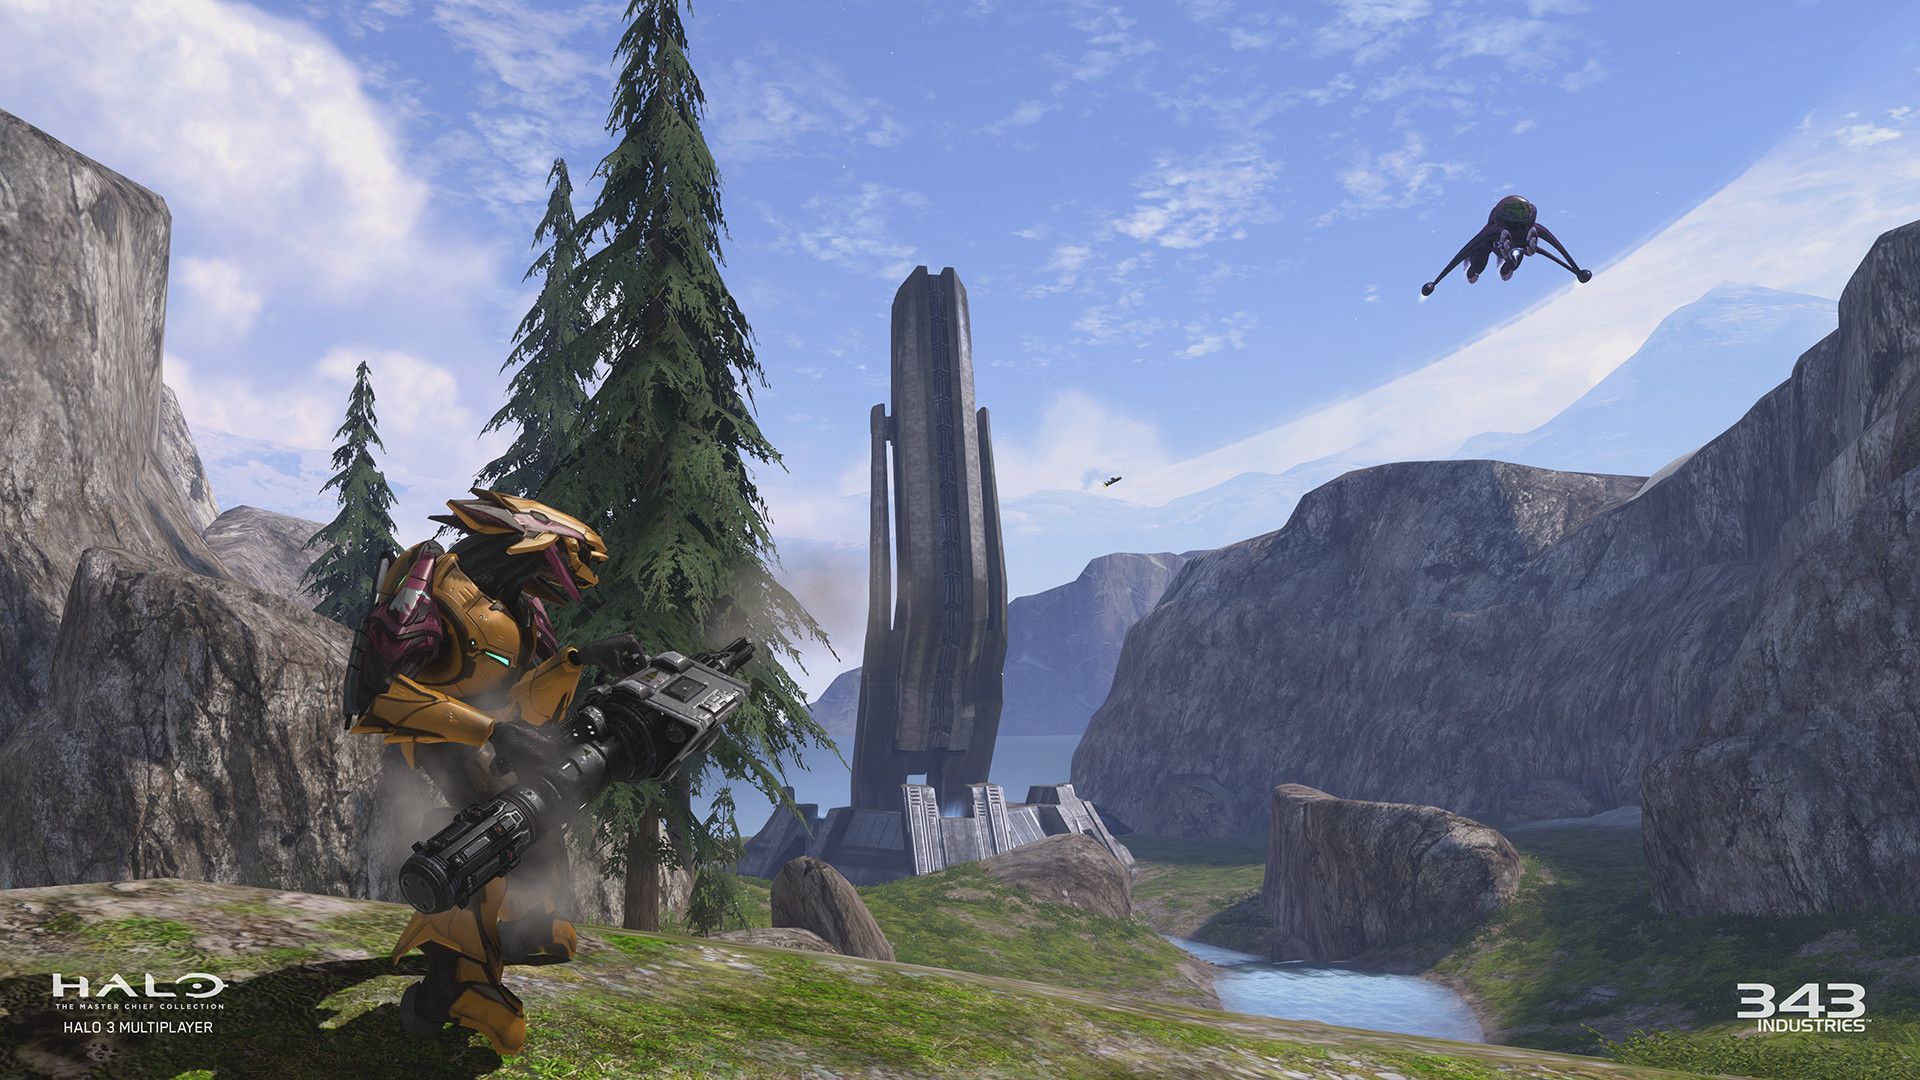 Halo: The Master Chief Collection [PC XONE] Ss_3e8aeae06a1ec2a4553e5cadbae0c902f8ff933f.1920x1080